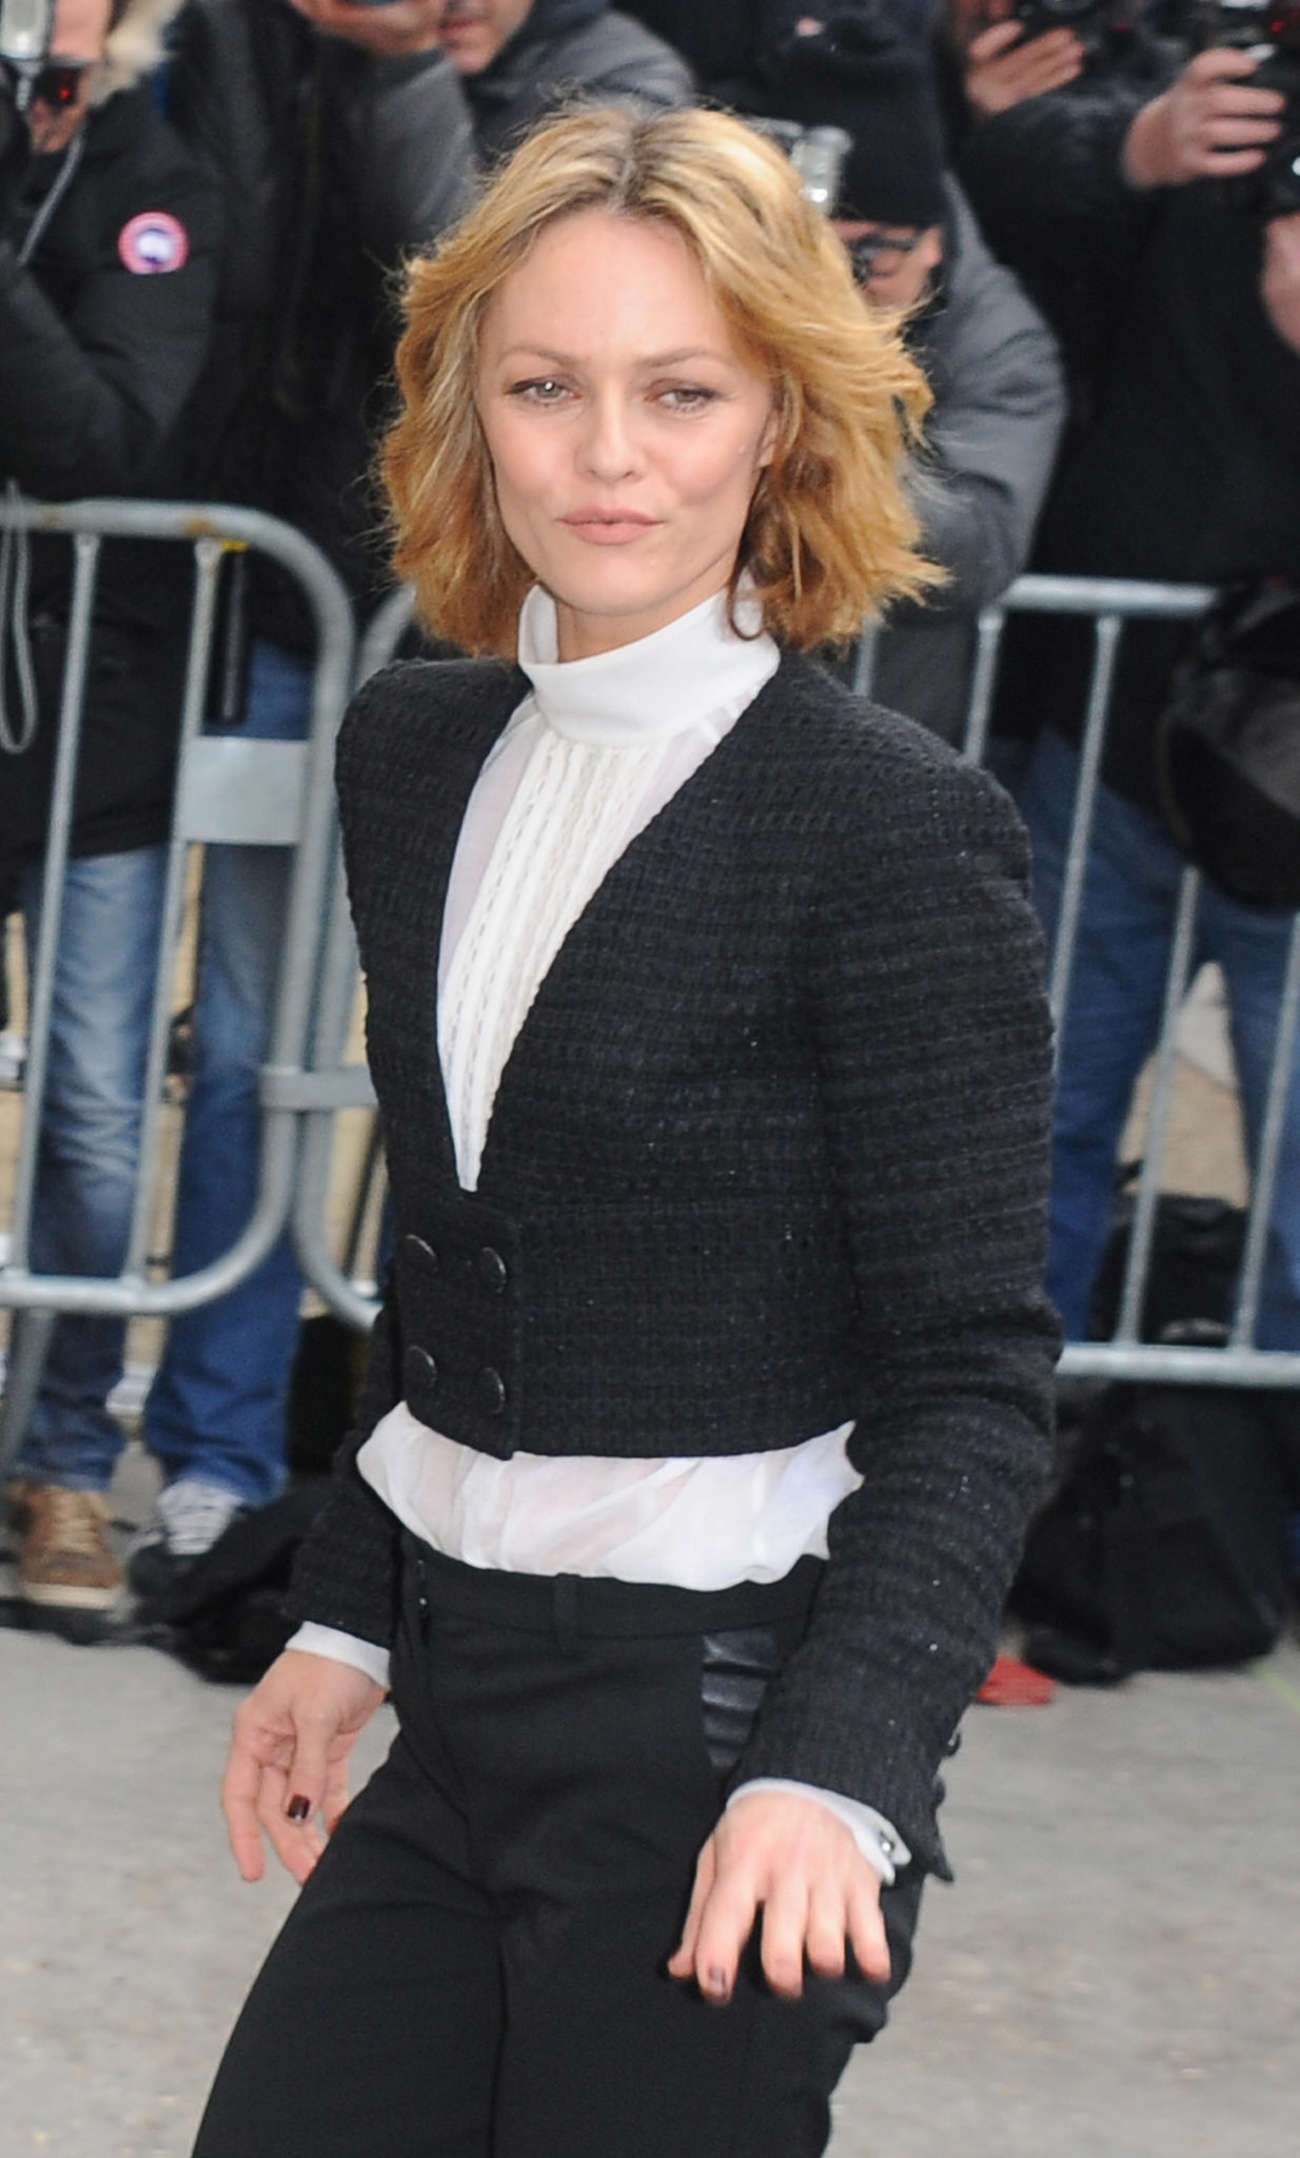 Vanessa Paradis Chanel Fashion Show in Paris